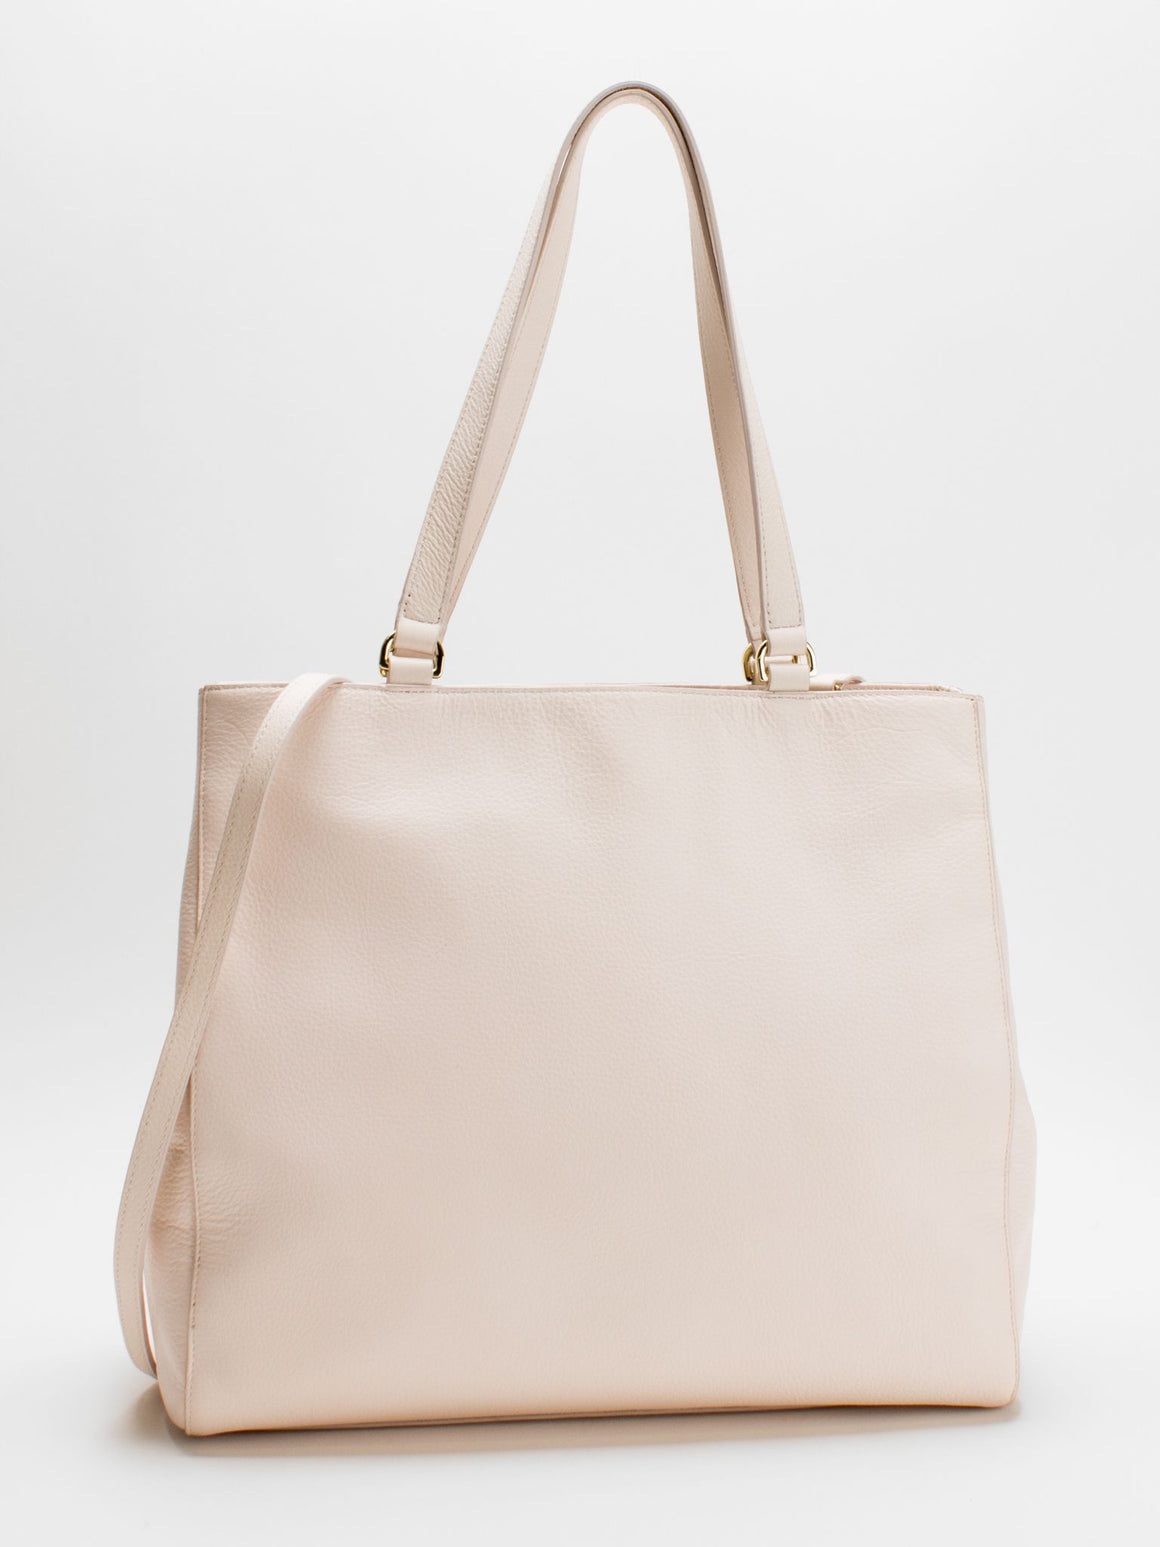 Julia Large Leather Tote - Vanilla